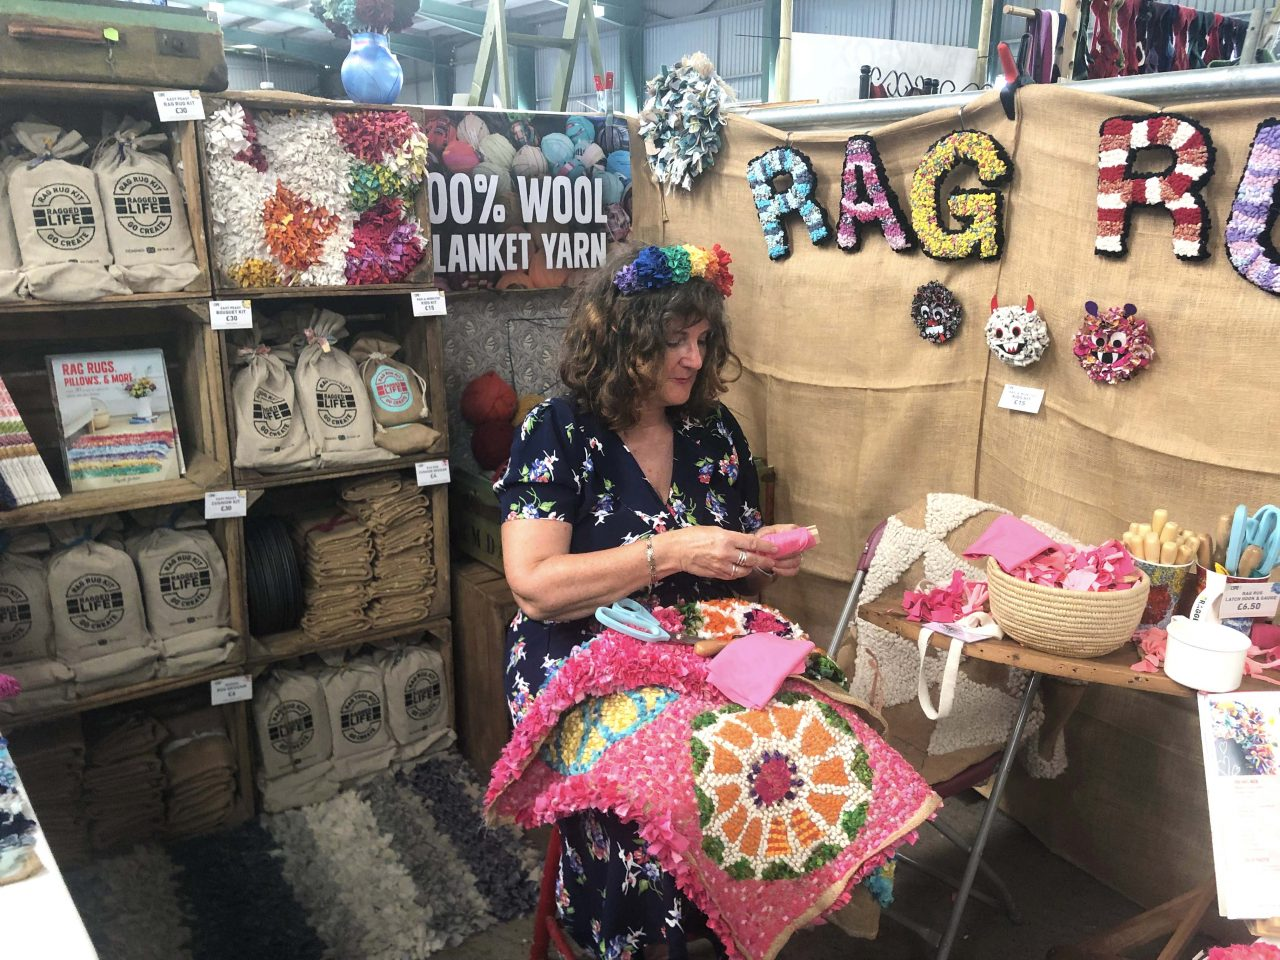 Ragged Life Rag Rug Shop at Woolfest 2019 in Cockermouth Lake District